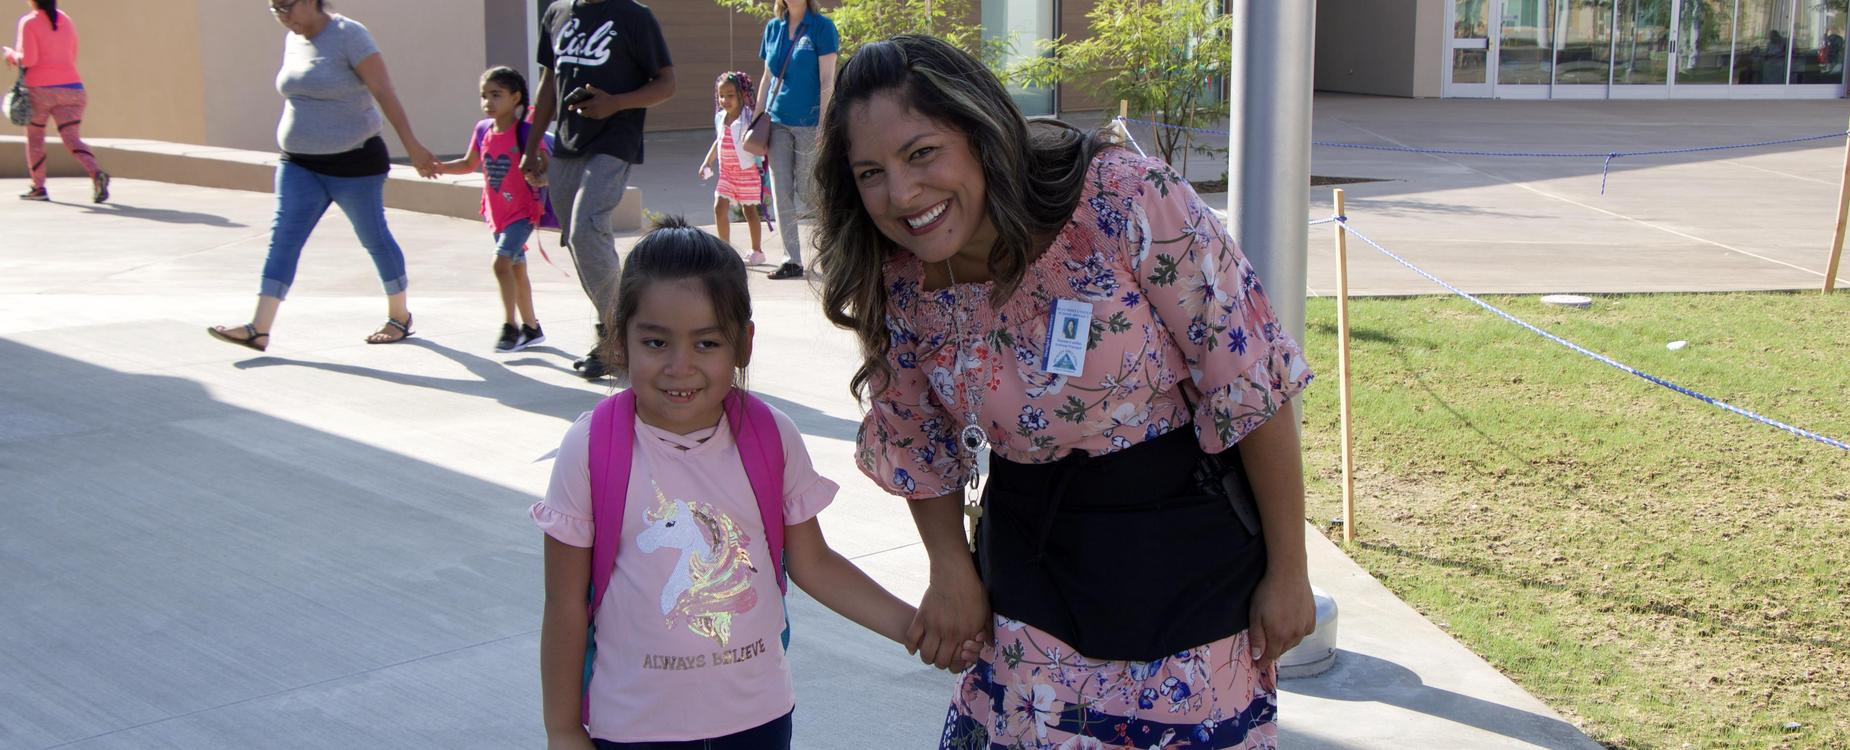 Assistant principal and student